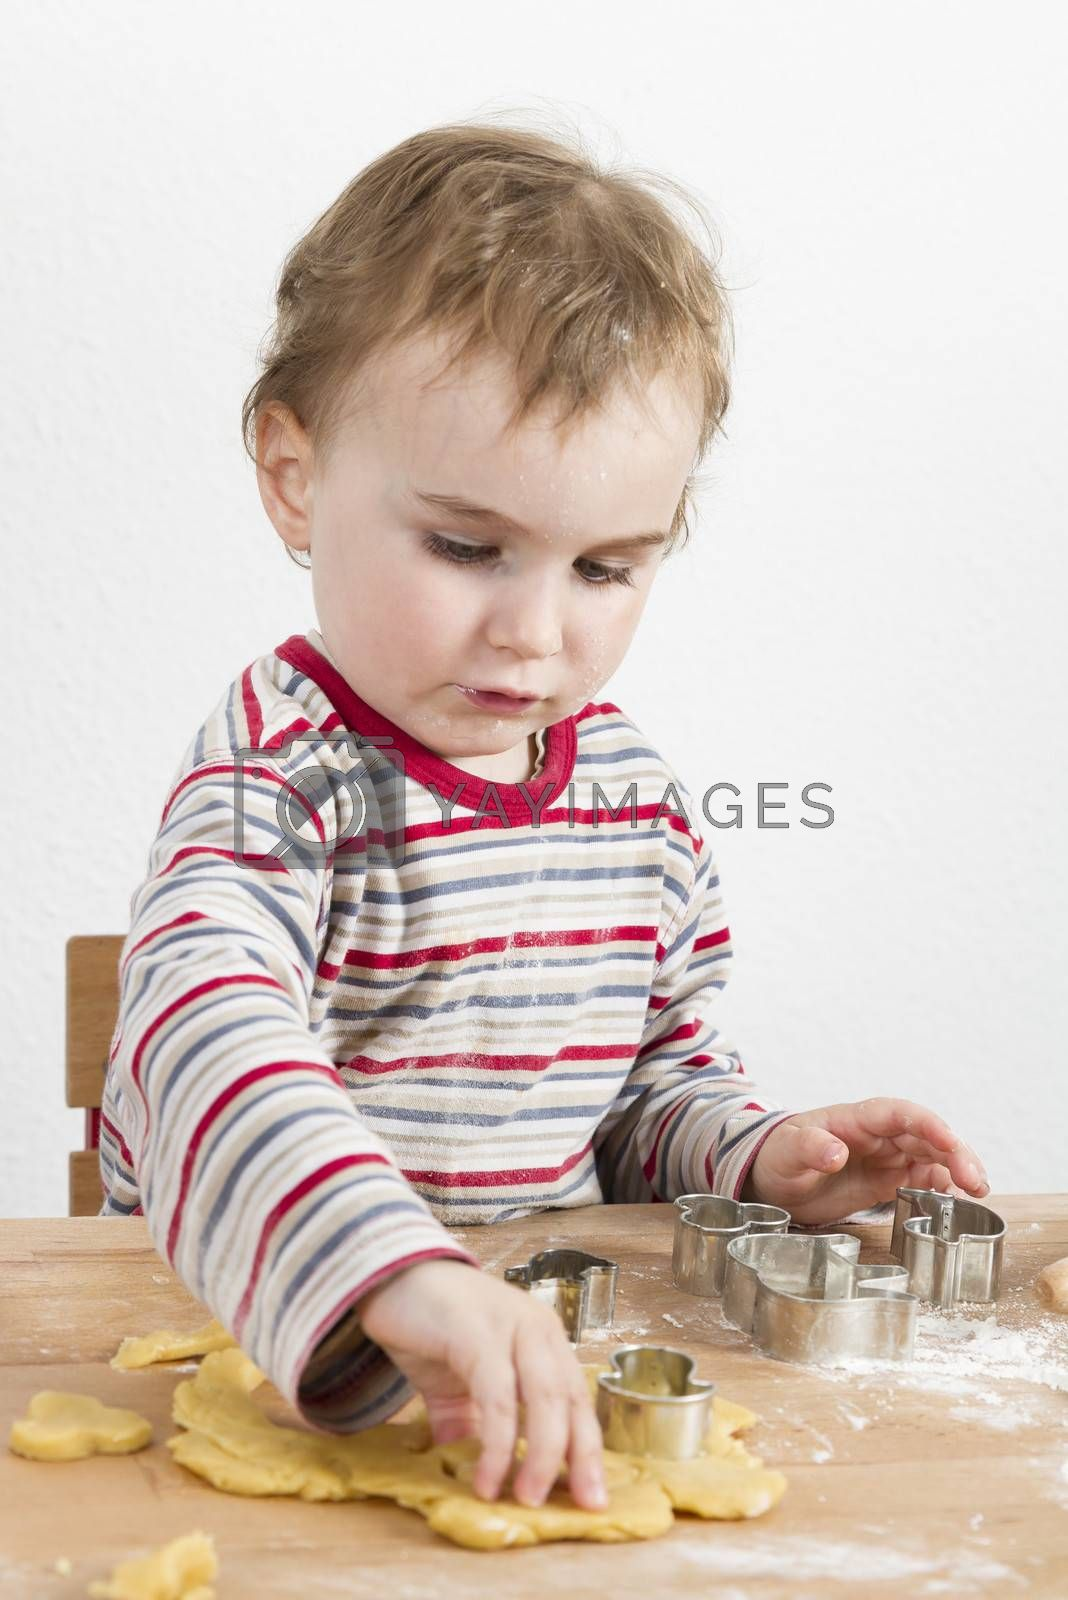 young child in vertical image looking at baking tools and dough